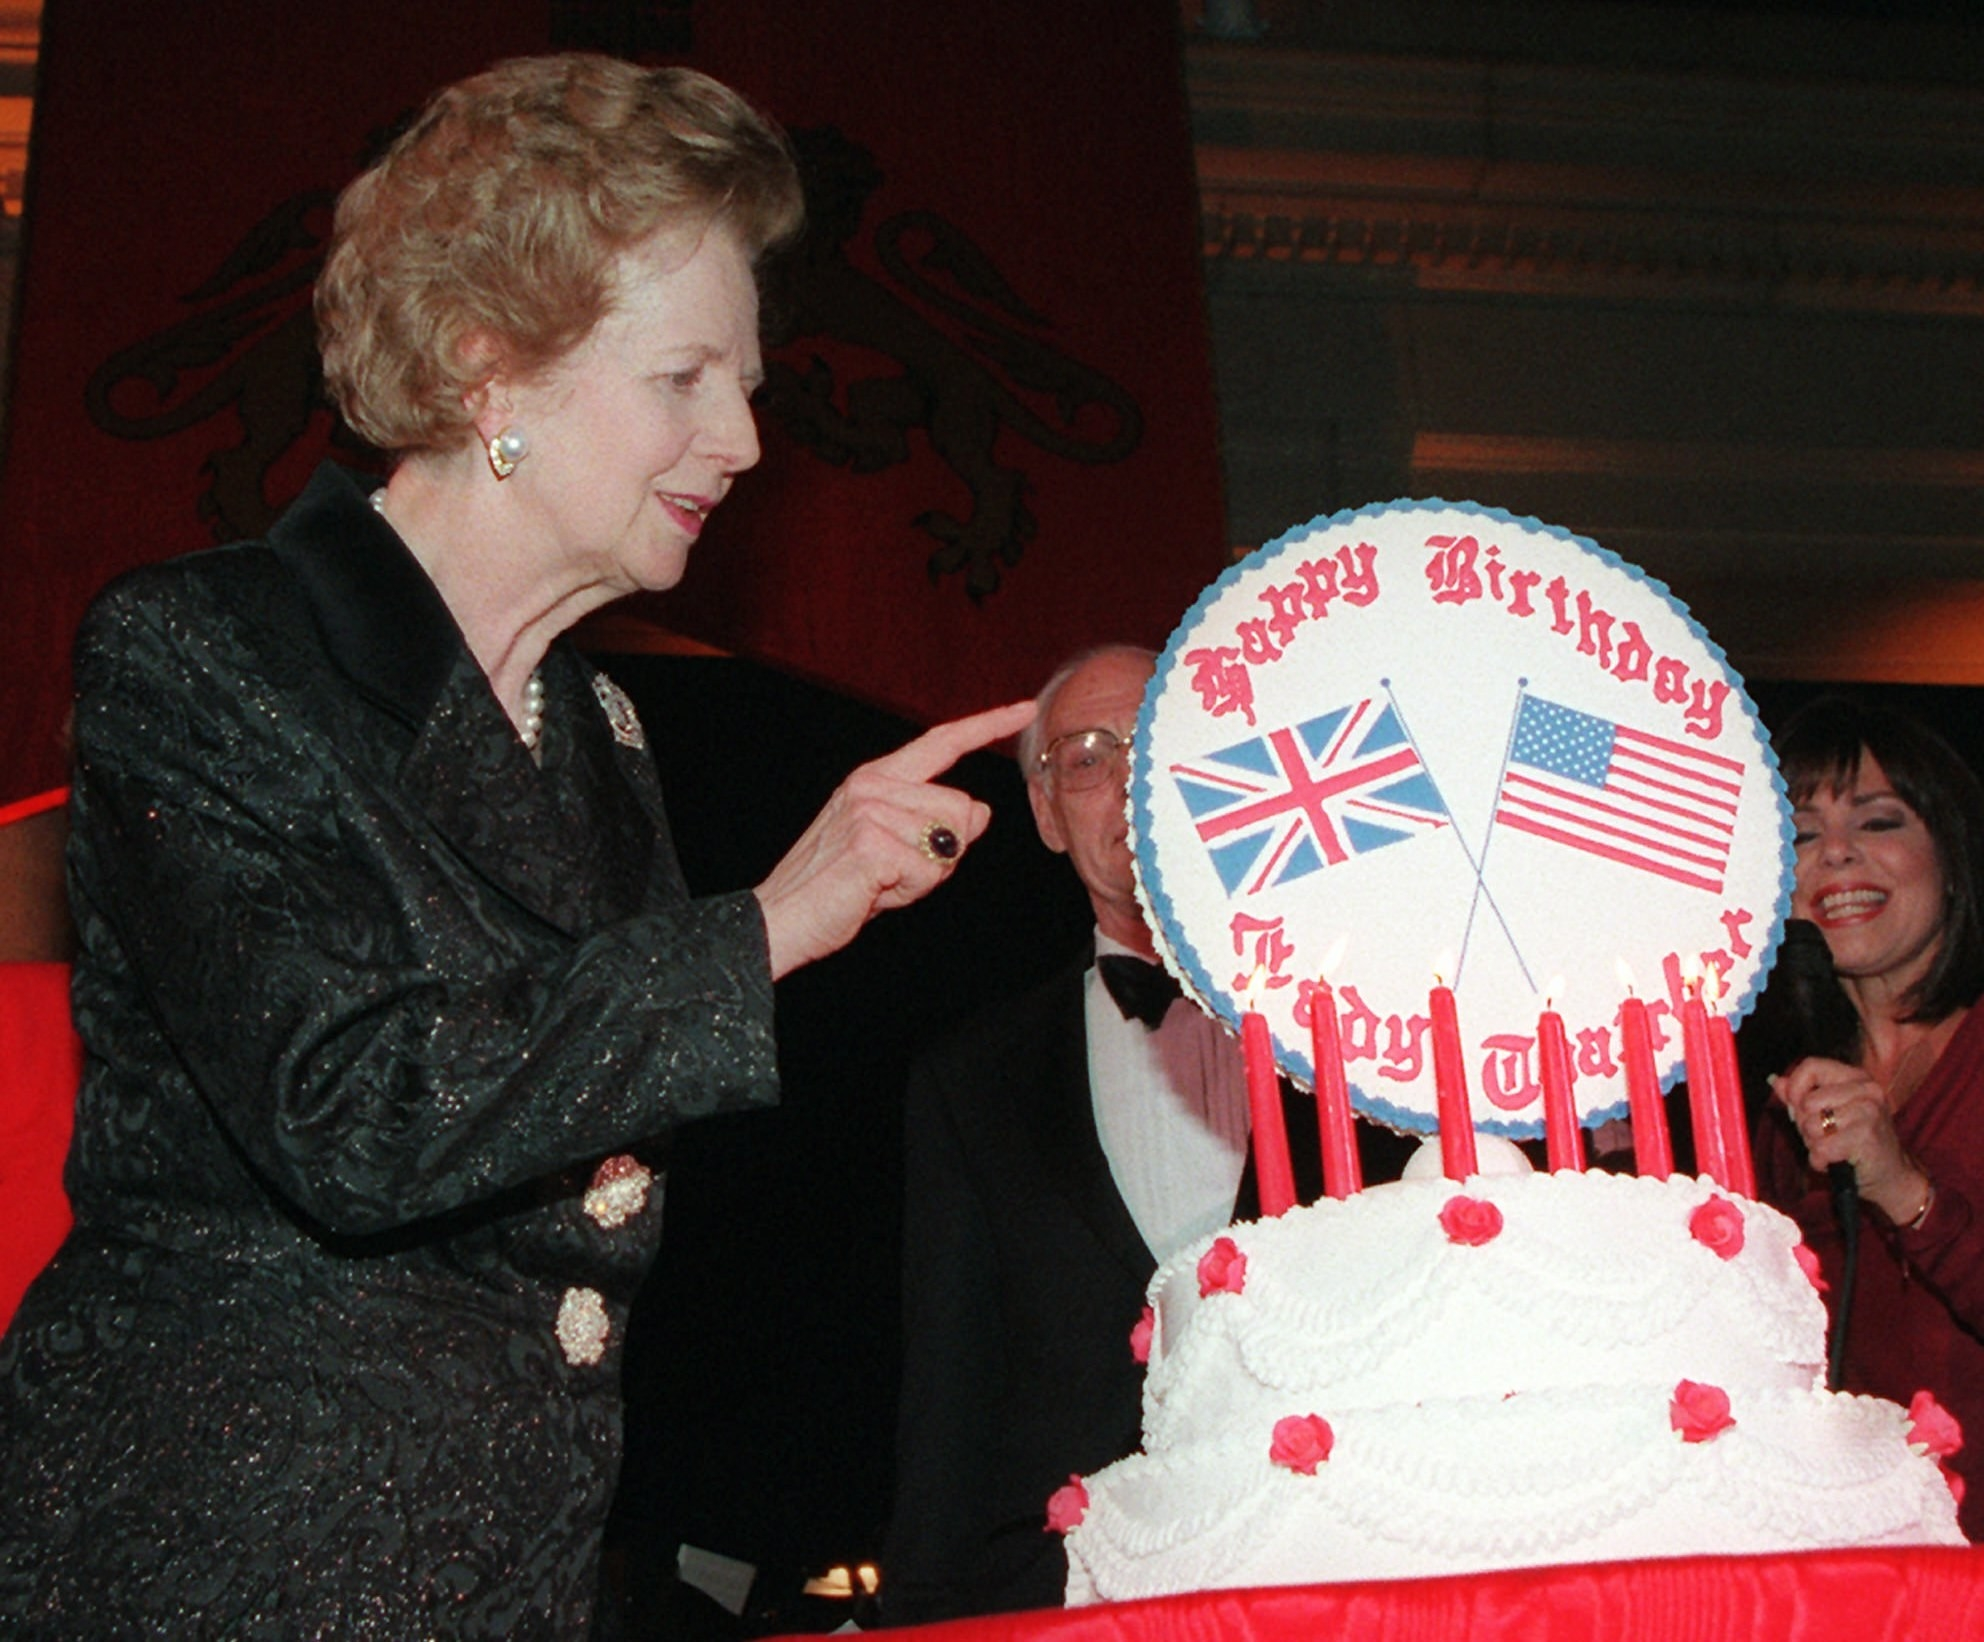 Margaret Thatcher looking at a cake with american and british flags